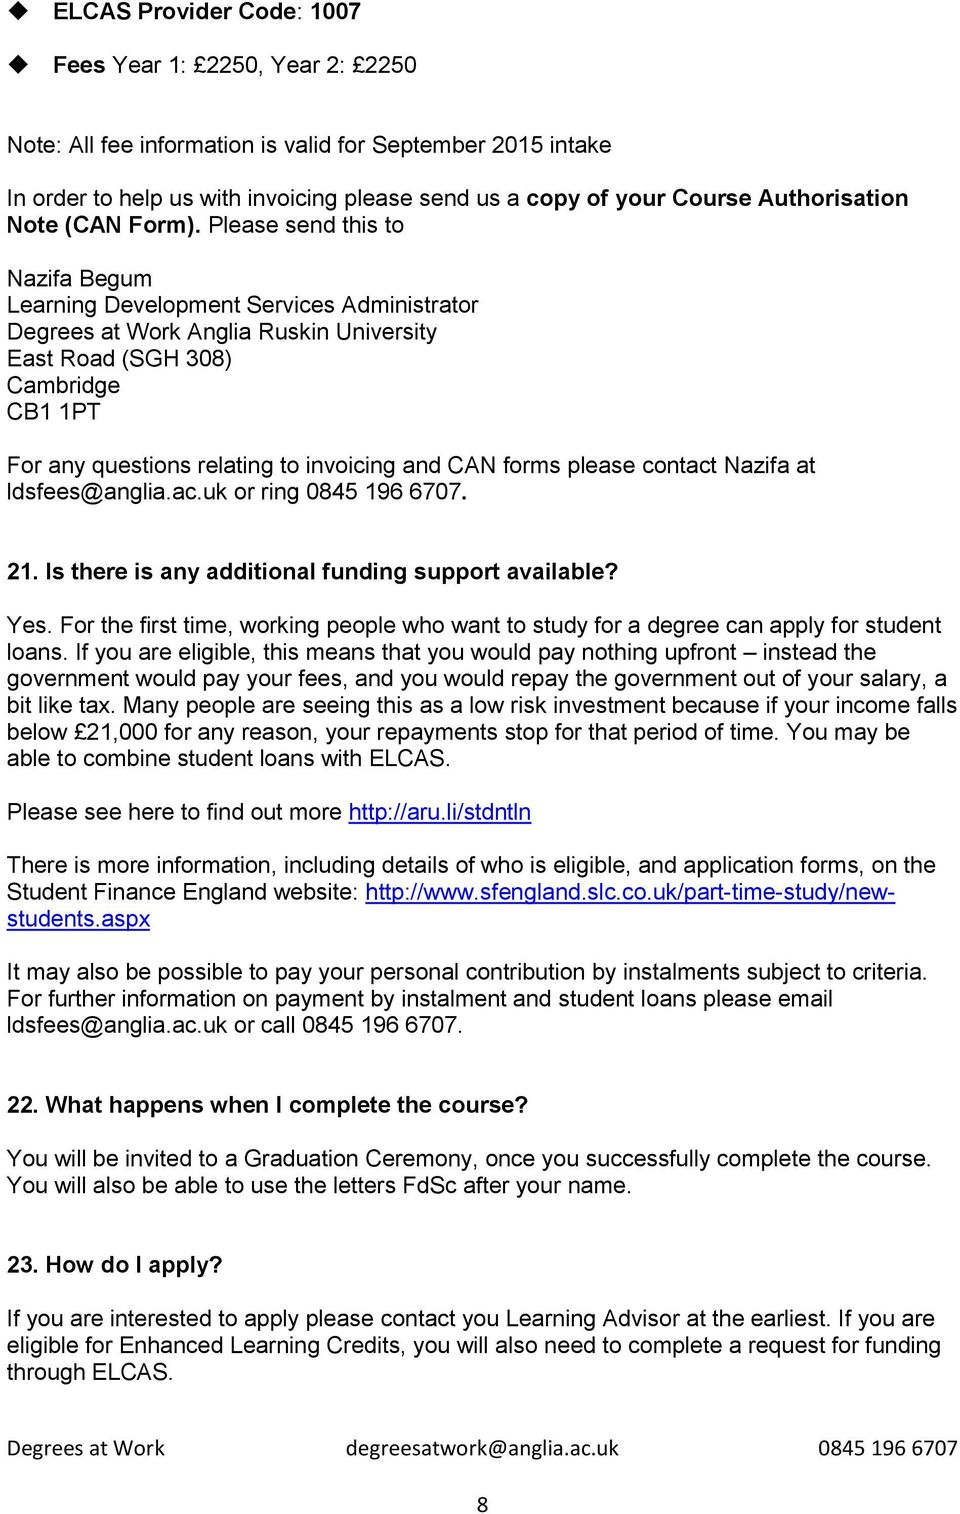 Please send this to Nazifa Begum Learning Development Services Administrator Degrees at Work Anglia Ruskin University East Road (SGH 308) Cambridge CB1 1PT For any questions relating to invoicing and